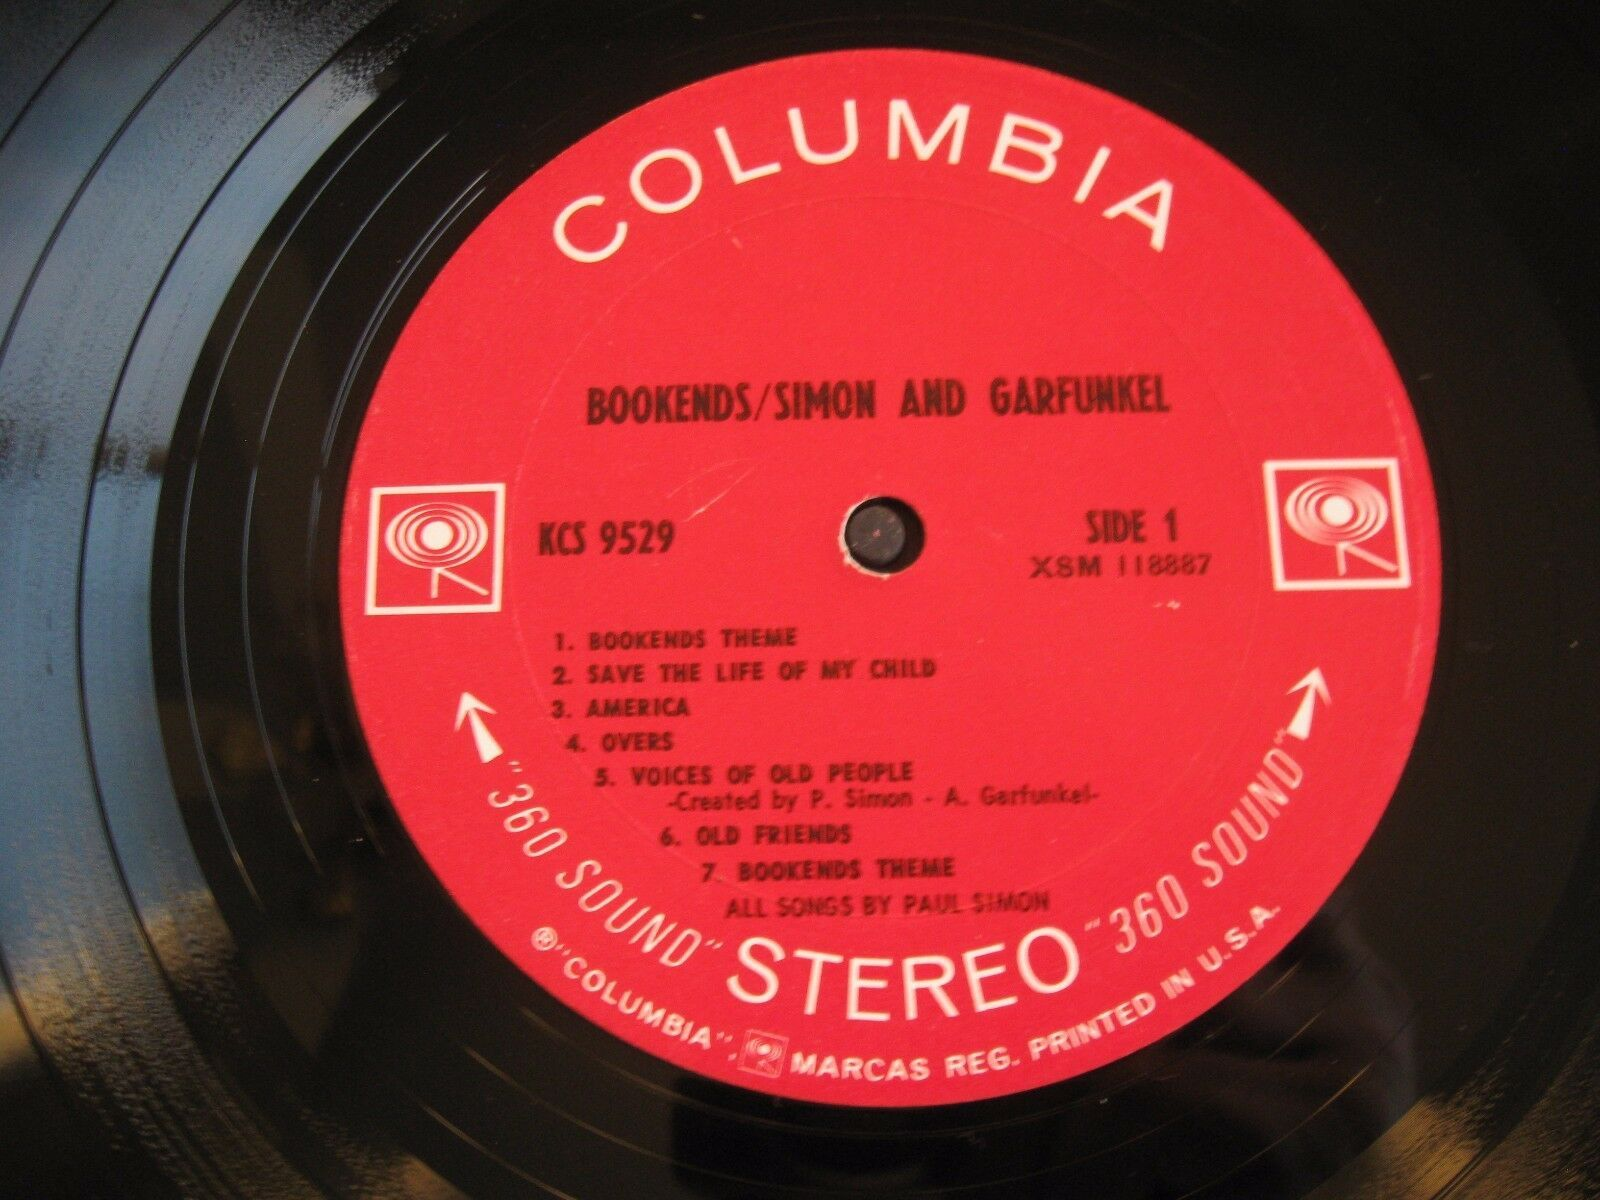 Simon & Garfunkel Bookends Columbia KCS 9529 Stereo 1A First Pressing image 4